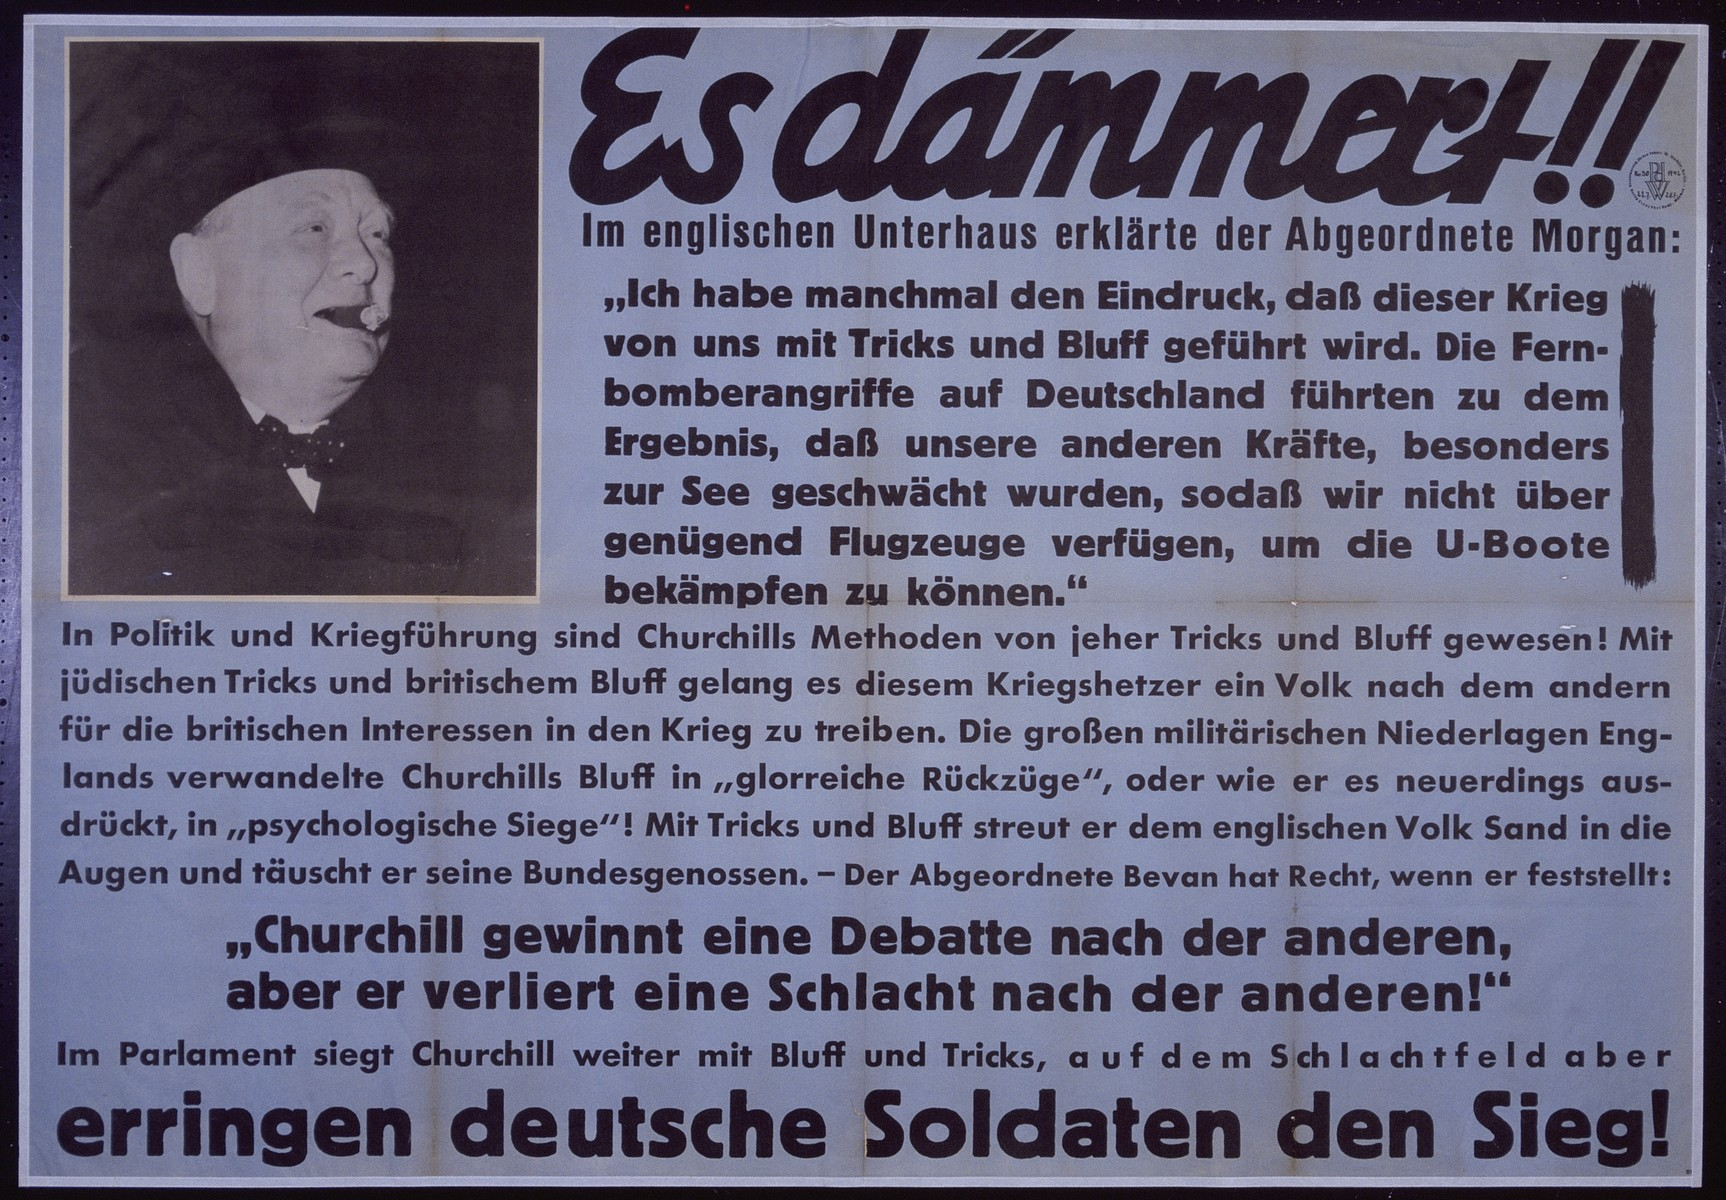 "Nazi propaganda poster entitled, ""Es dammert!!"" issued by the ""Parole der Woche,"" a wall newspaper (Wandzeitung) published by the National Socialist Party propaganda office in Munich."